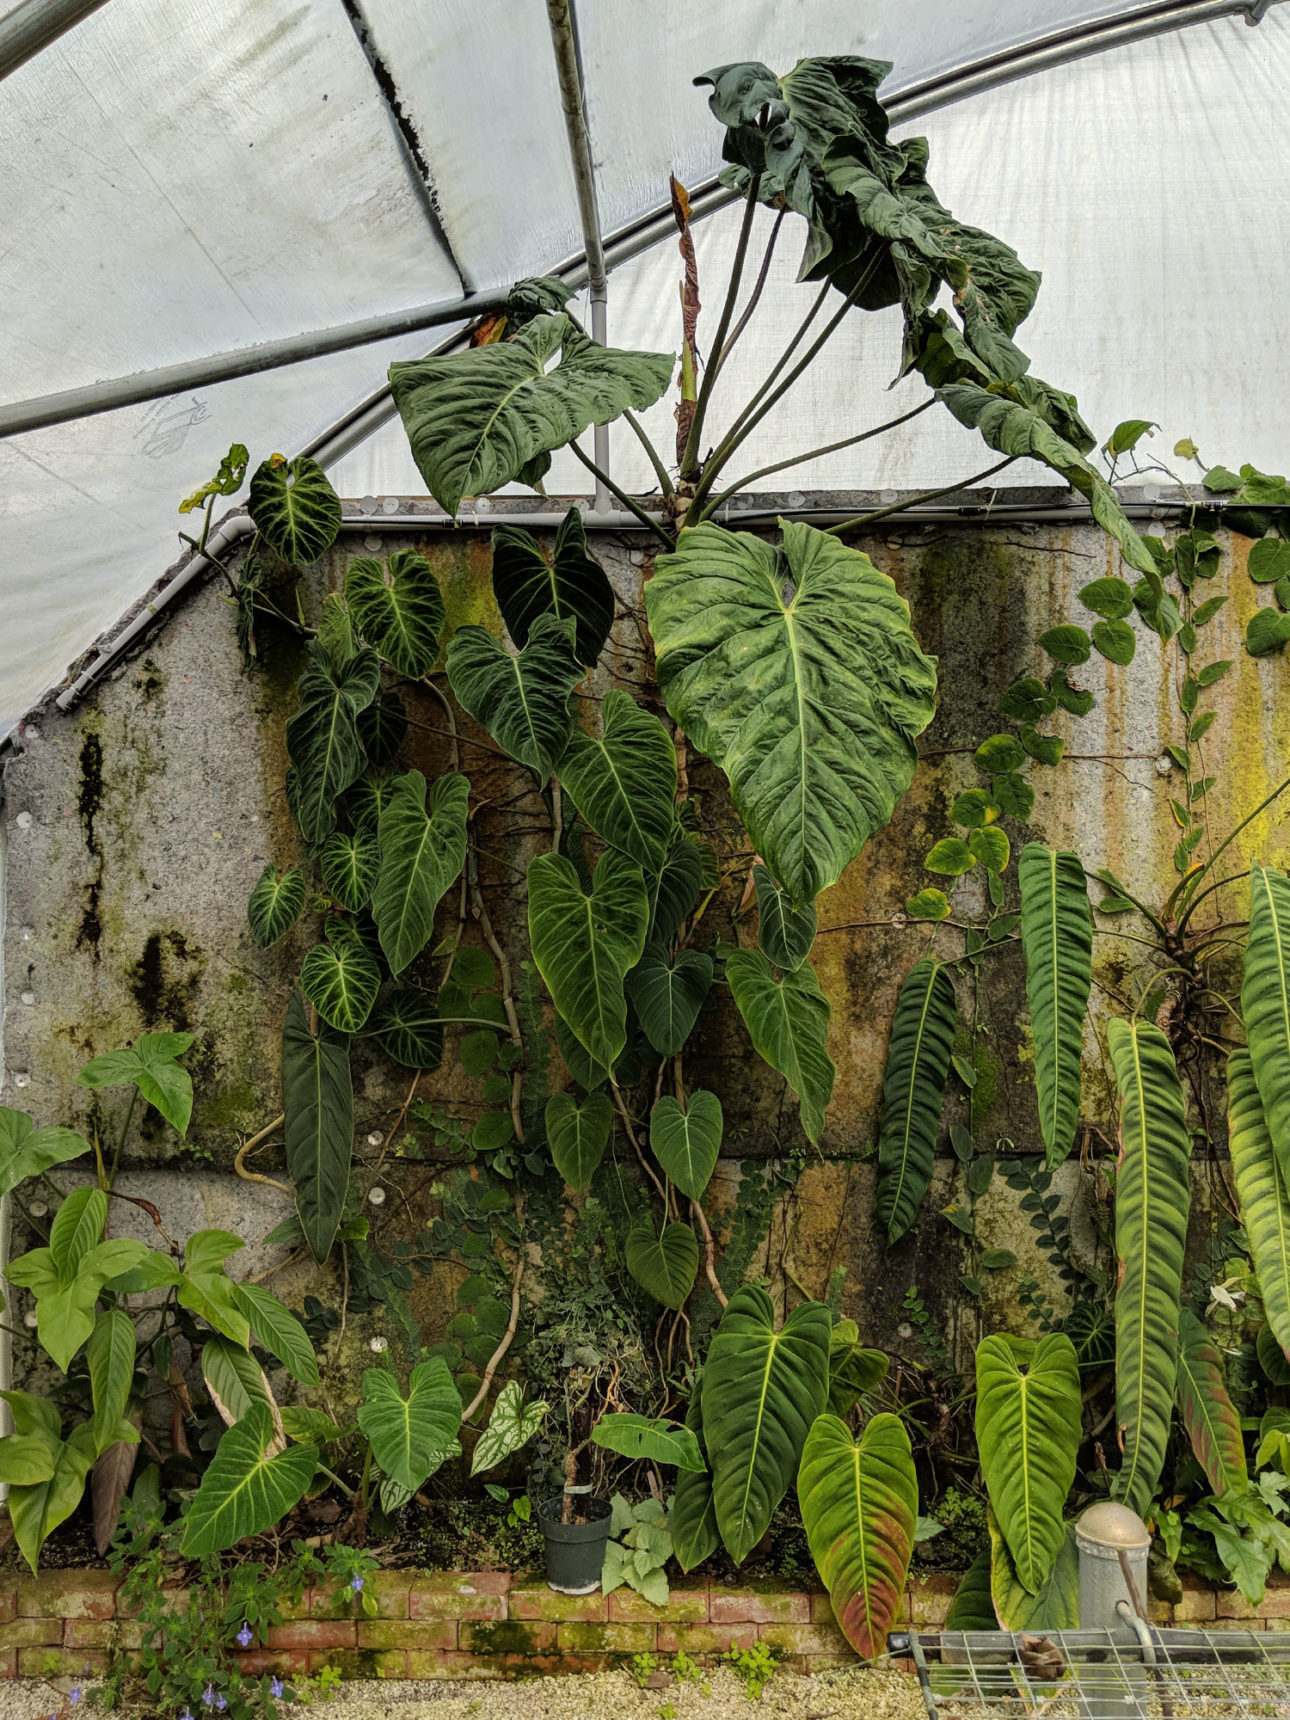 Philodendrons climbing a wall in a greenhouse